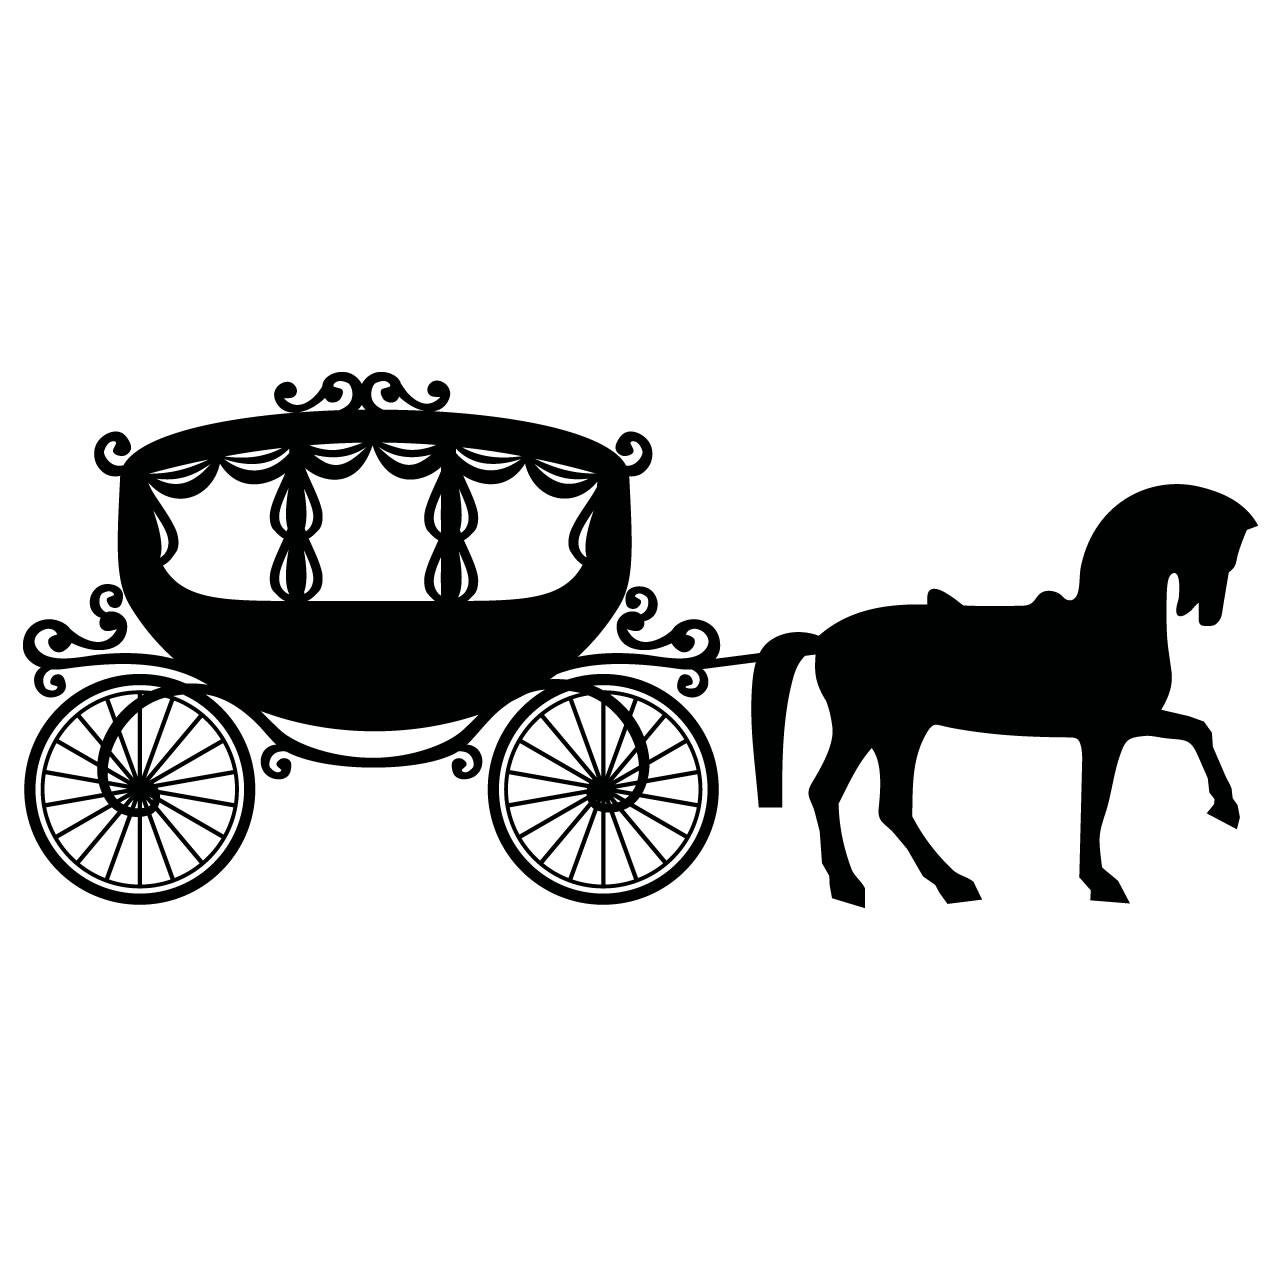 Carriage clipart Carriage Carriage The Horse And